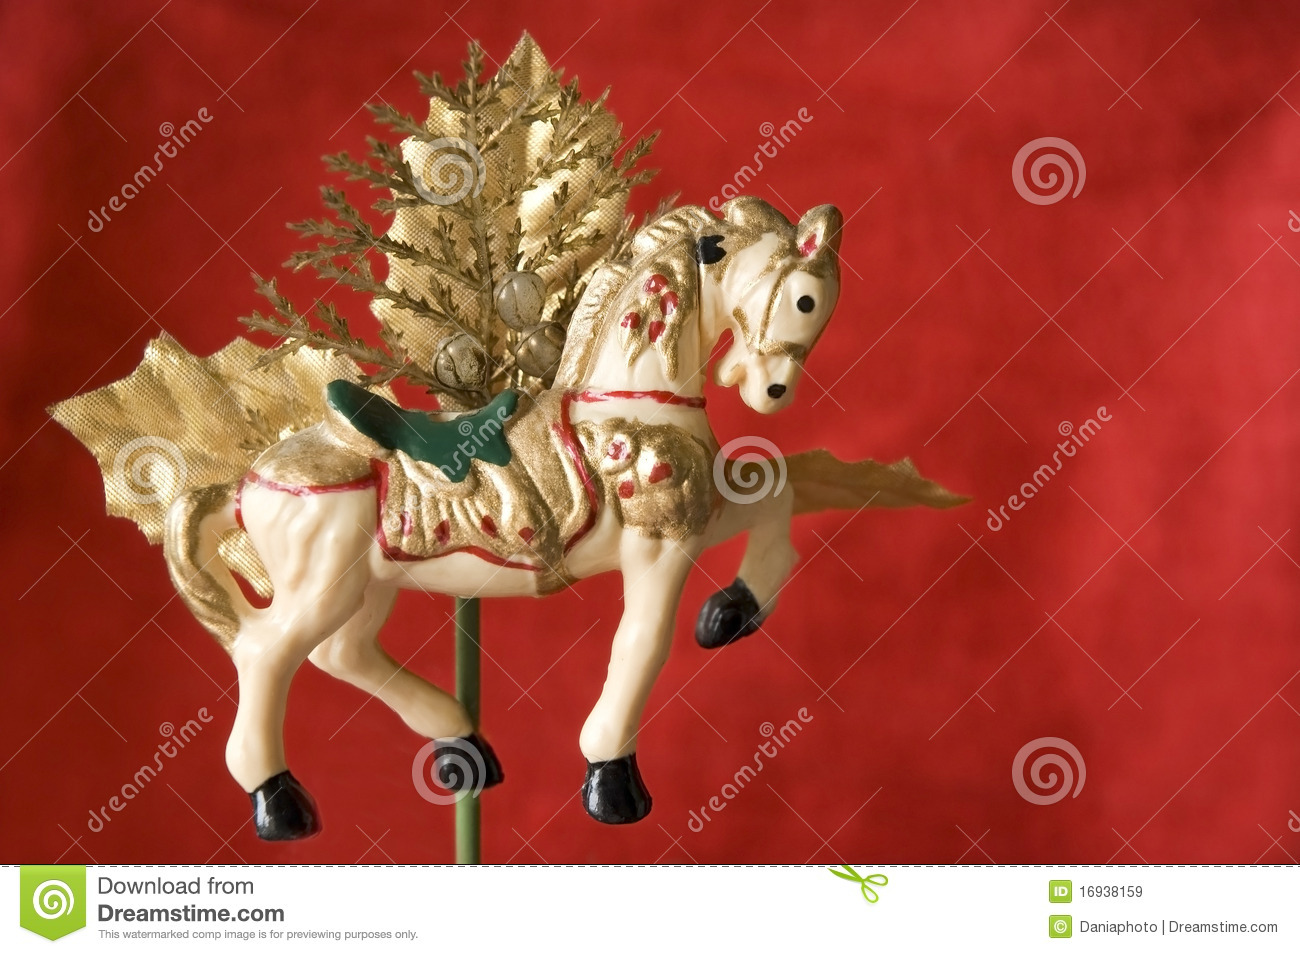 Merry-go-round Christmas Ornament Horse Royalty Free Stock Images ...